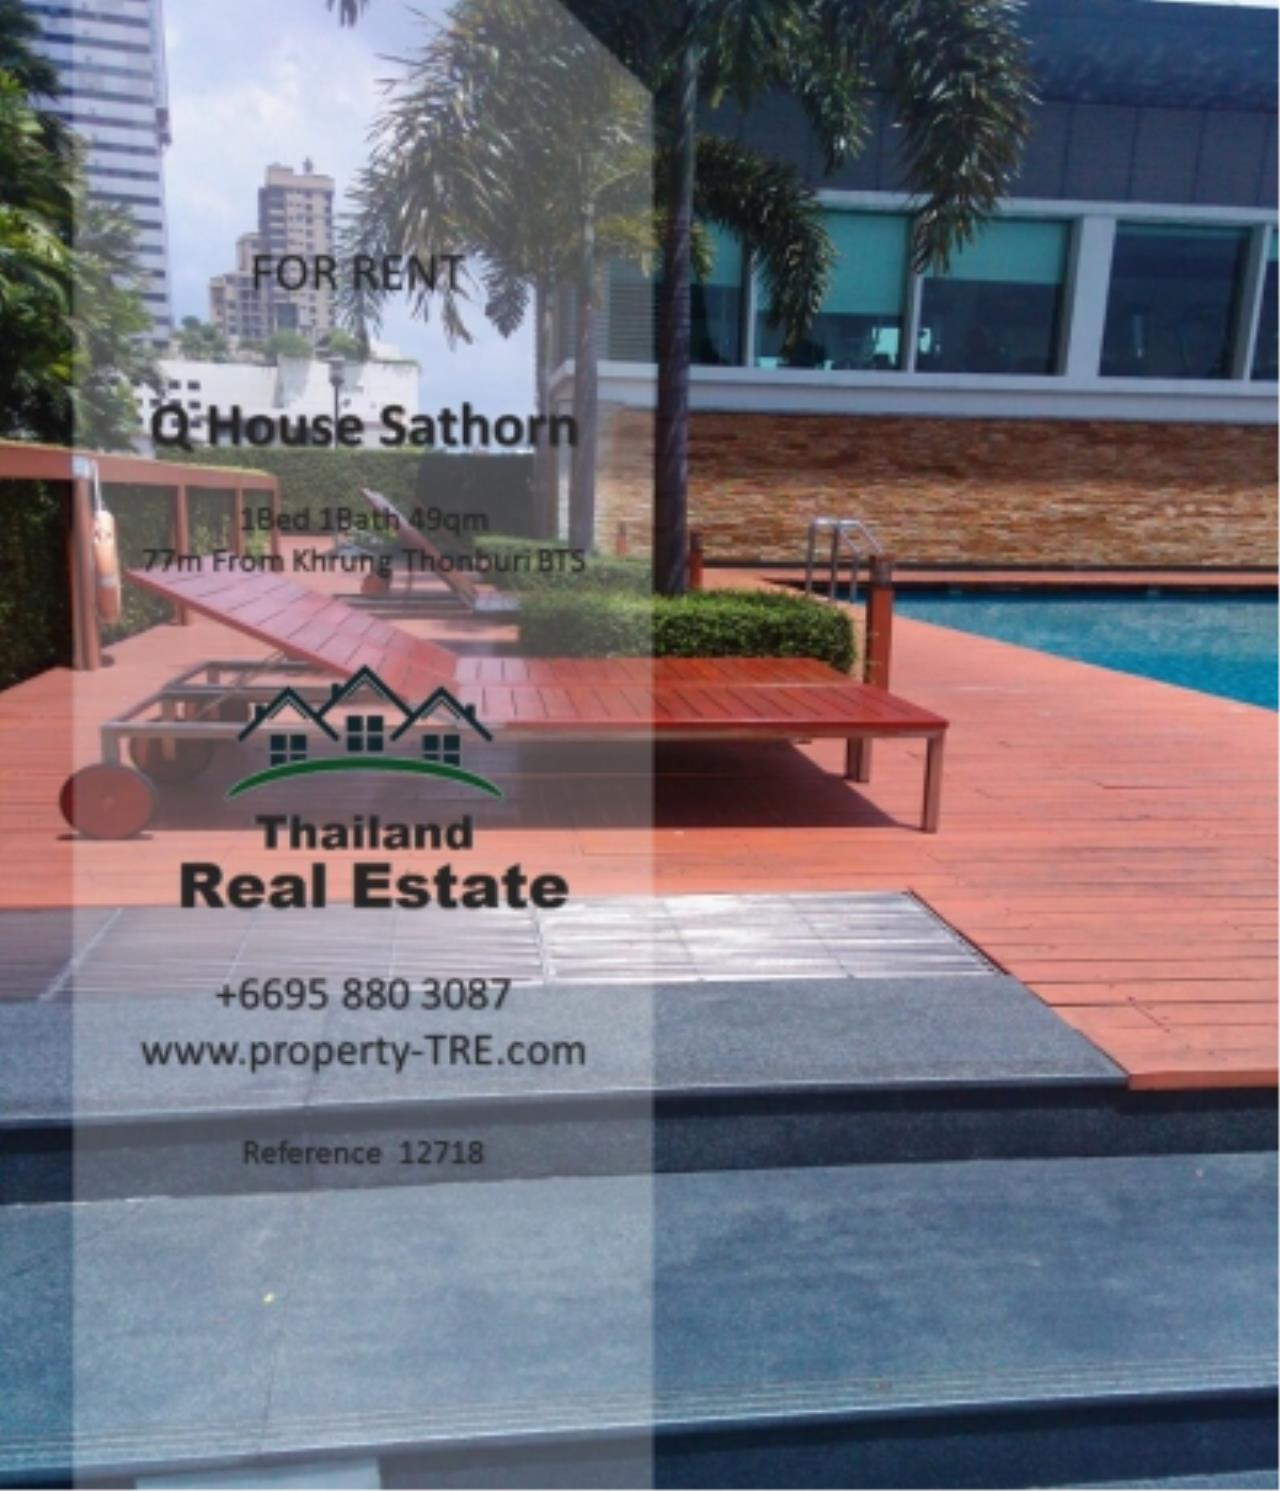 Thailand Real Estate Agency's 1 Bedroom Condo at  Q House  near BTS Khrung Thonburi(12718) 13